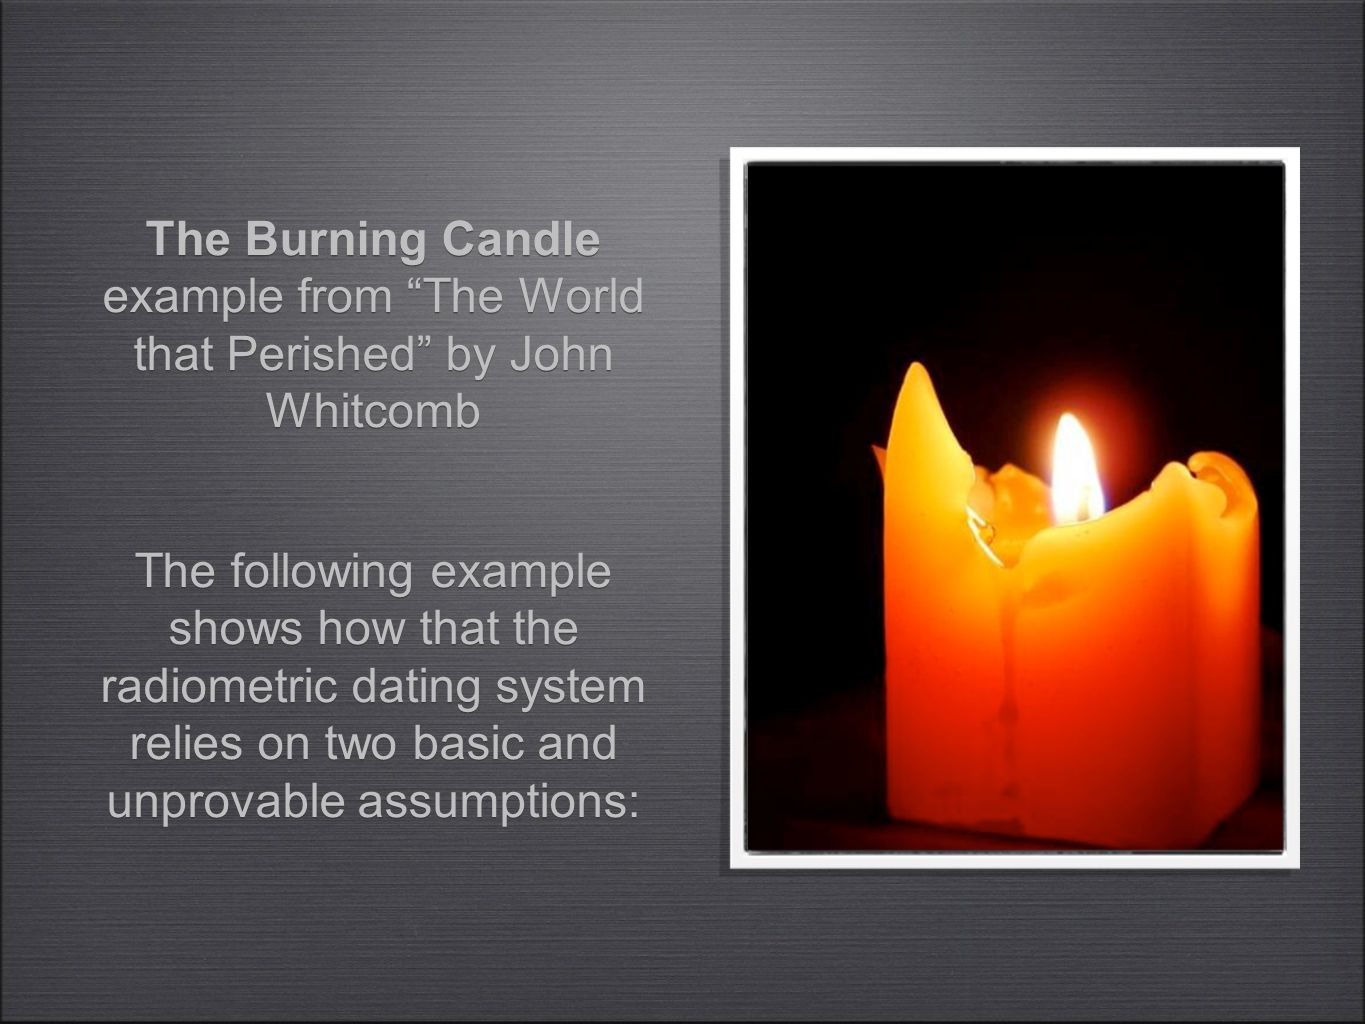 The following example shows how that the radiometric dating system relies on two basic and unprovable assumptions: The Burning Candle example from The World that Perished by John Whitcomb